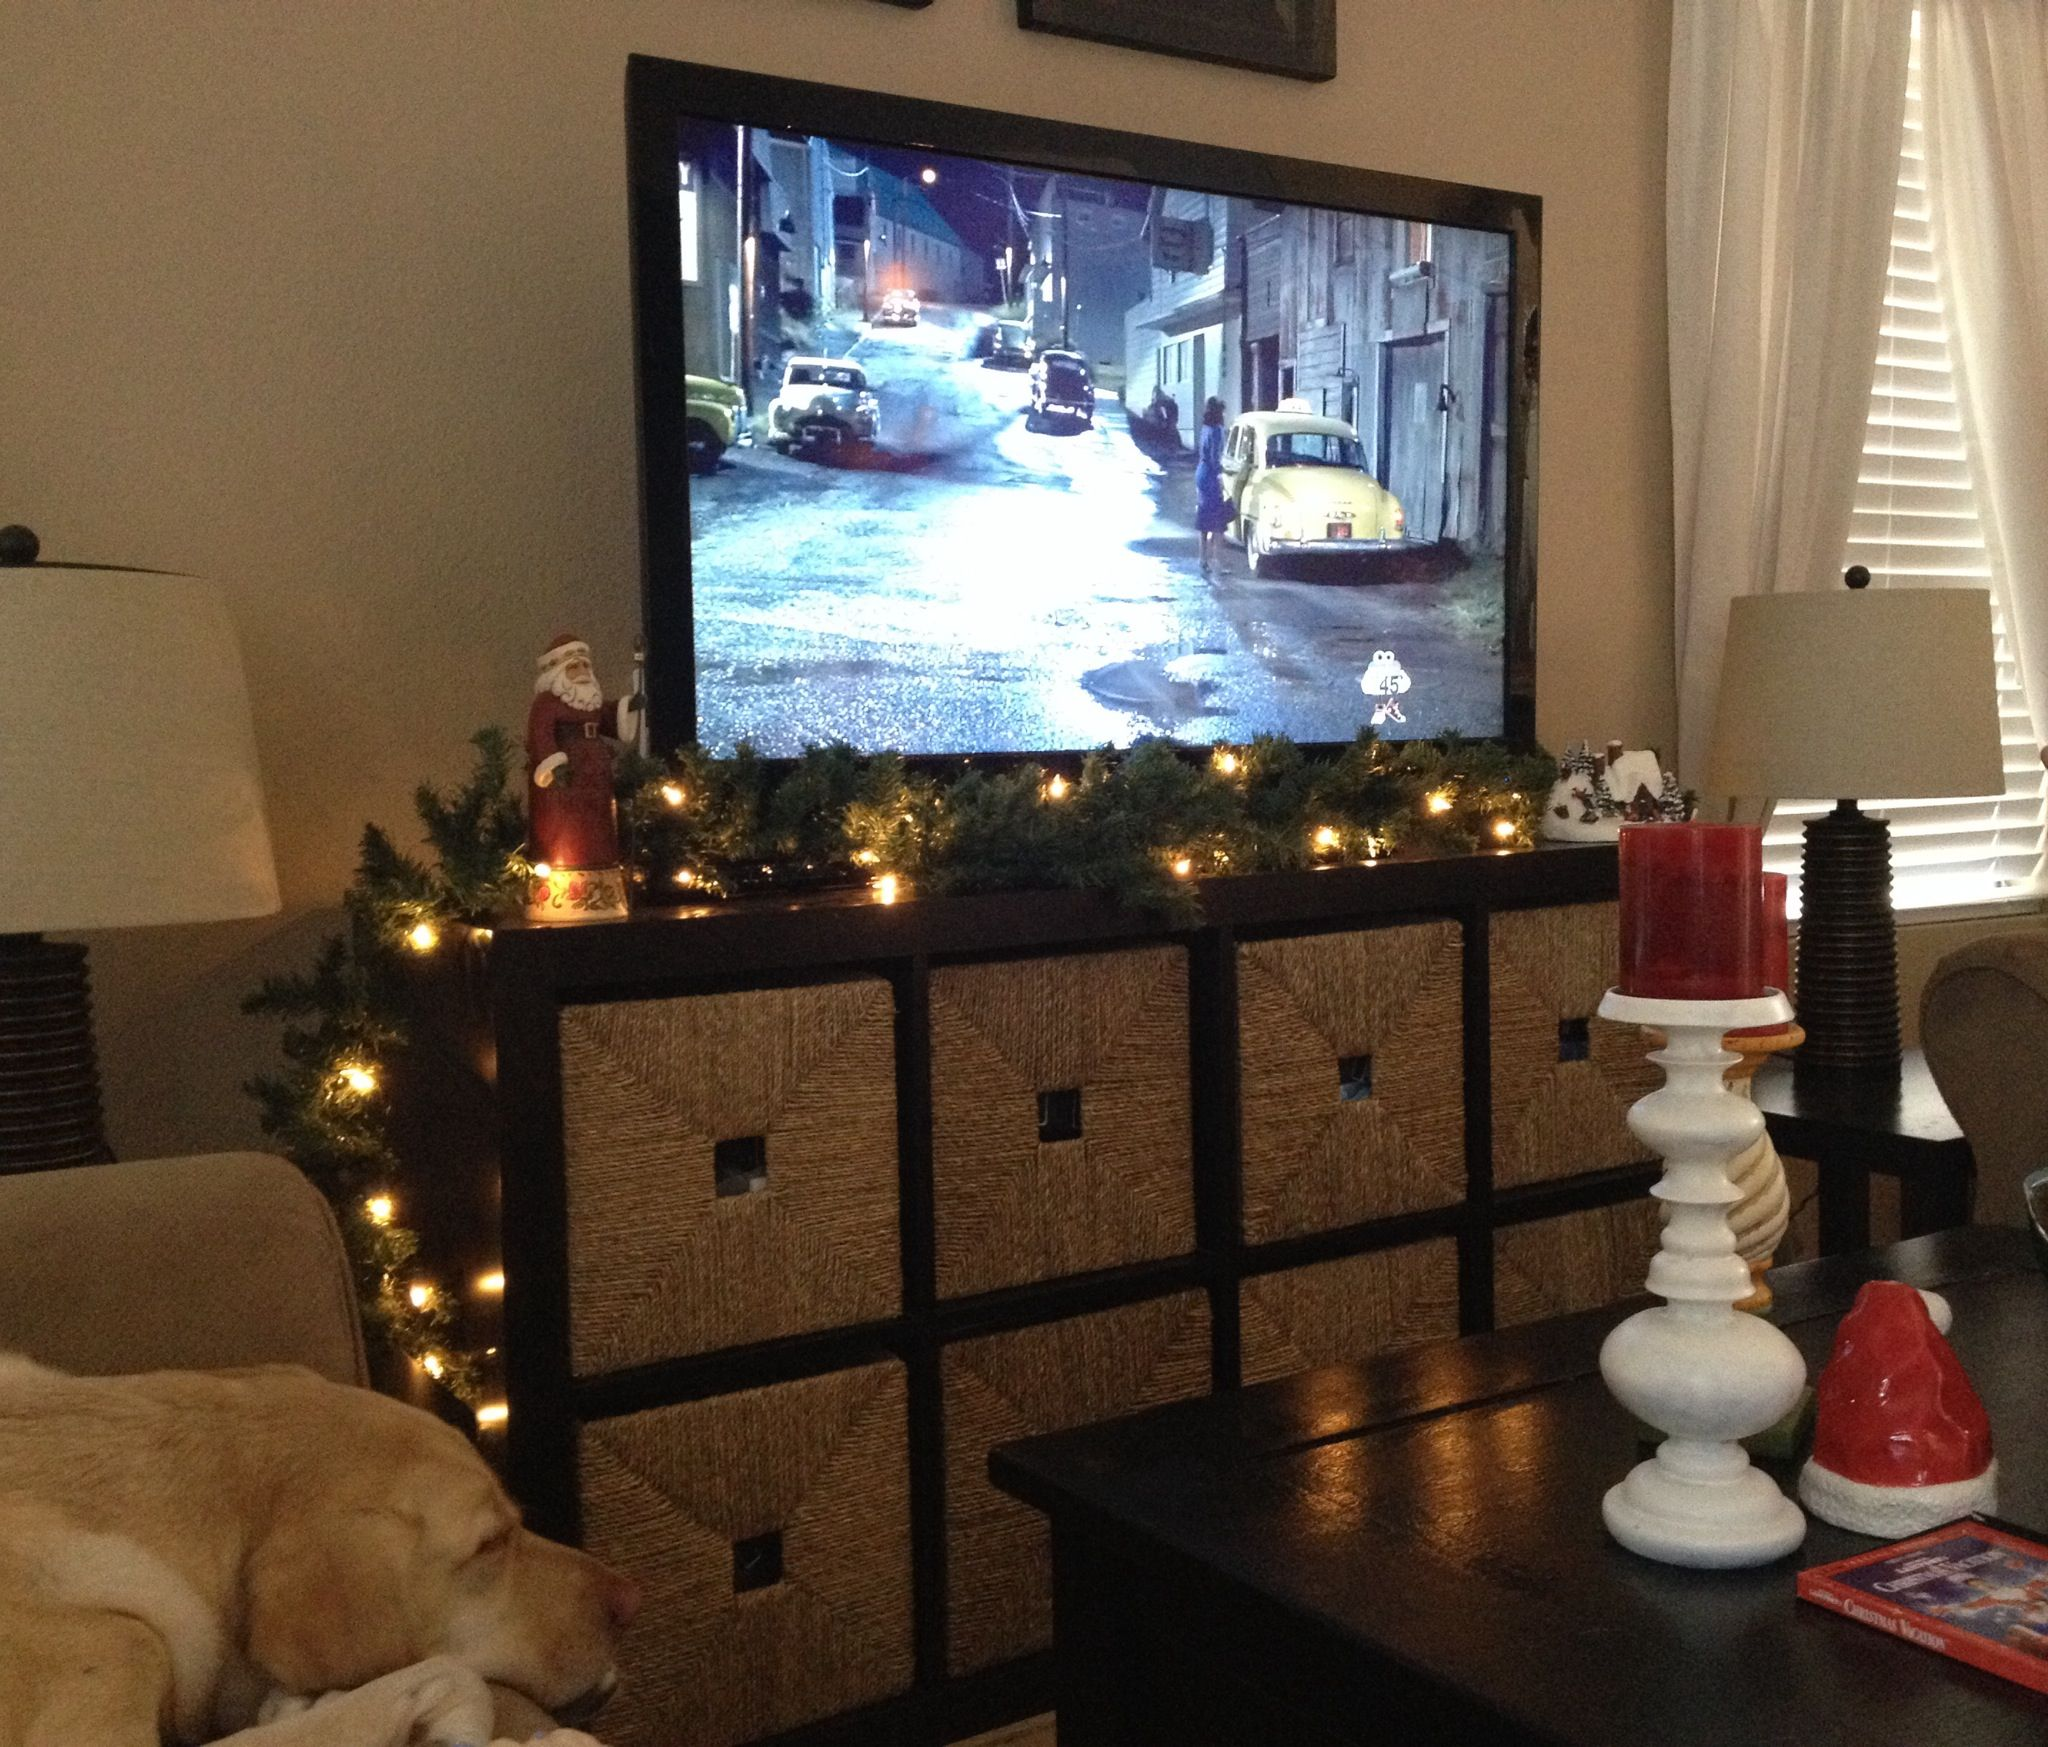 Don\u0027t have a fireplace to decorate with garland. I used our